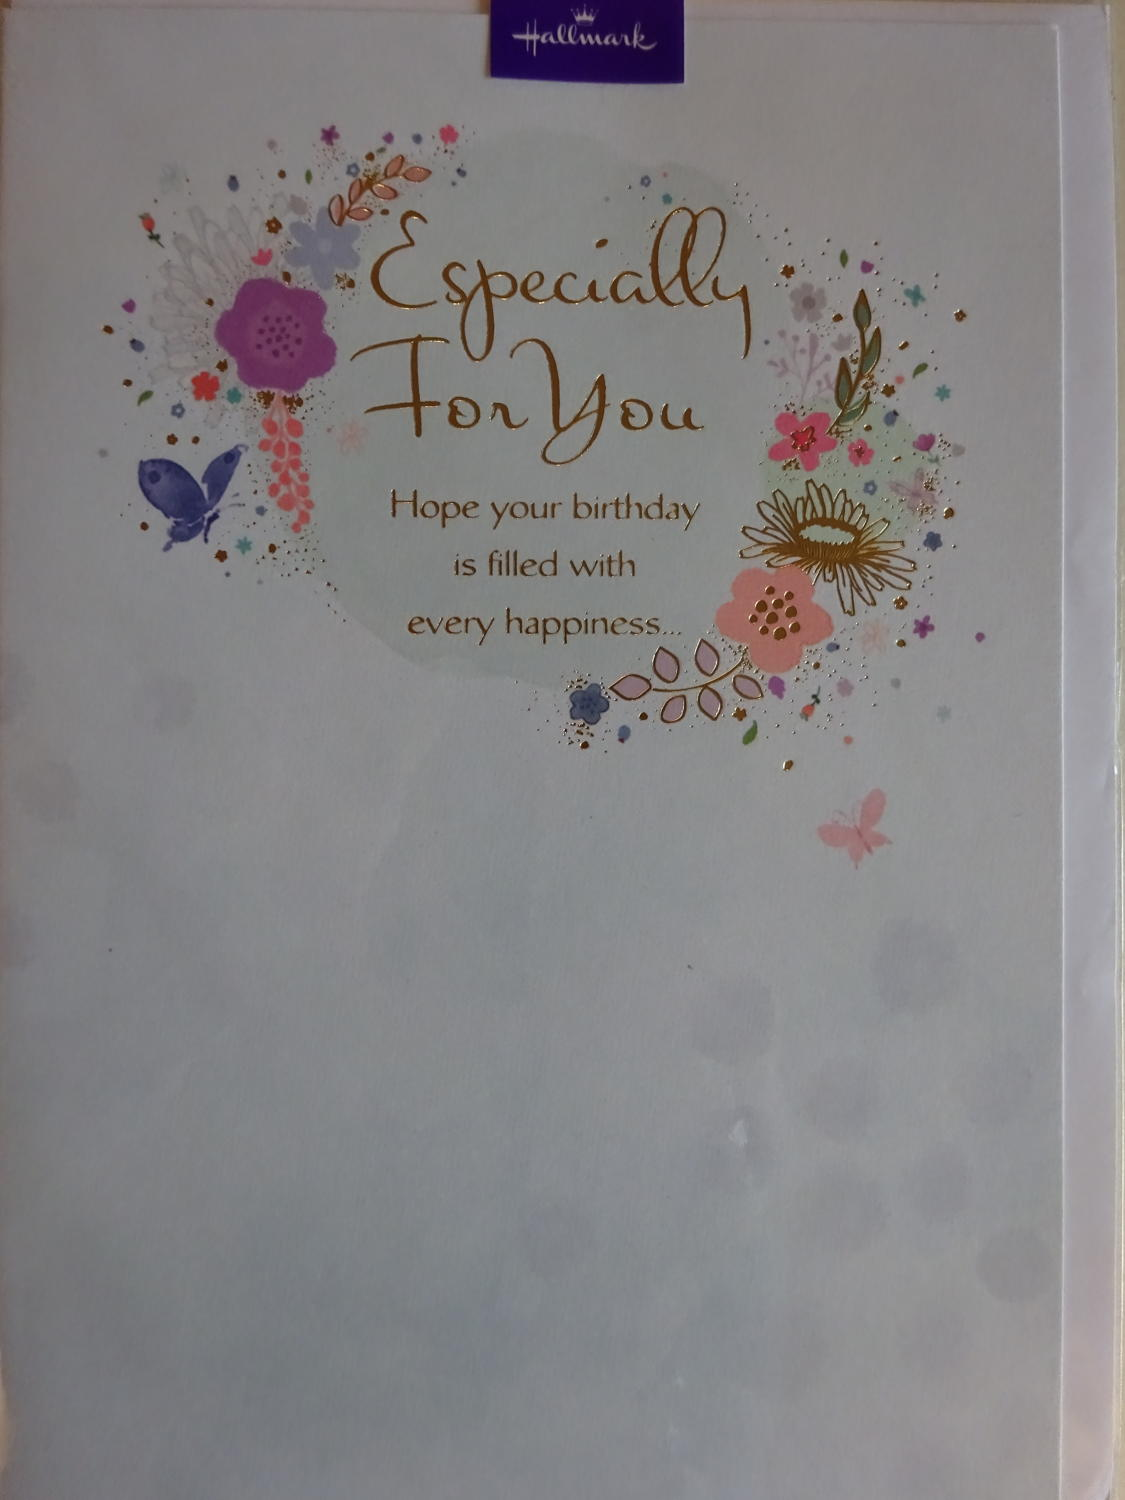 Especially for you birthday card